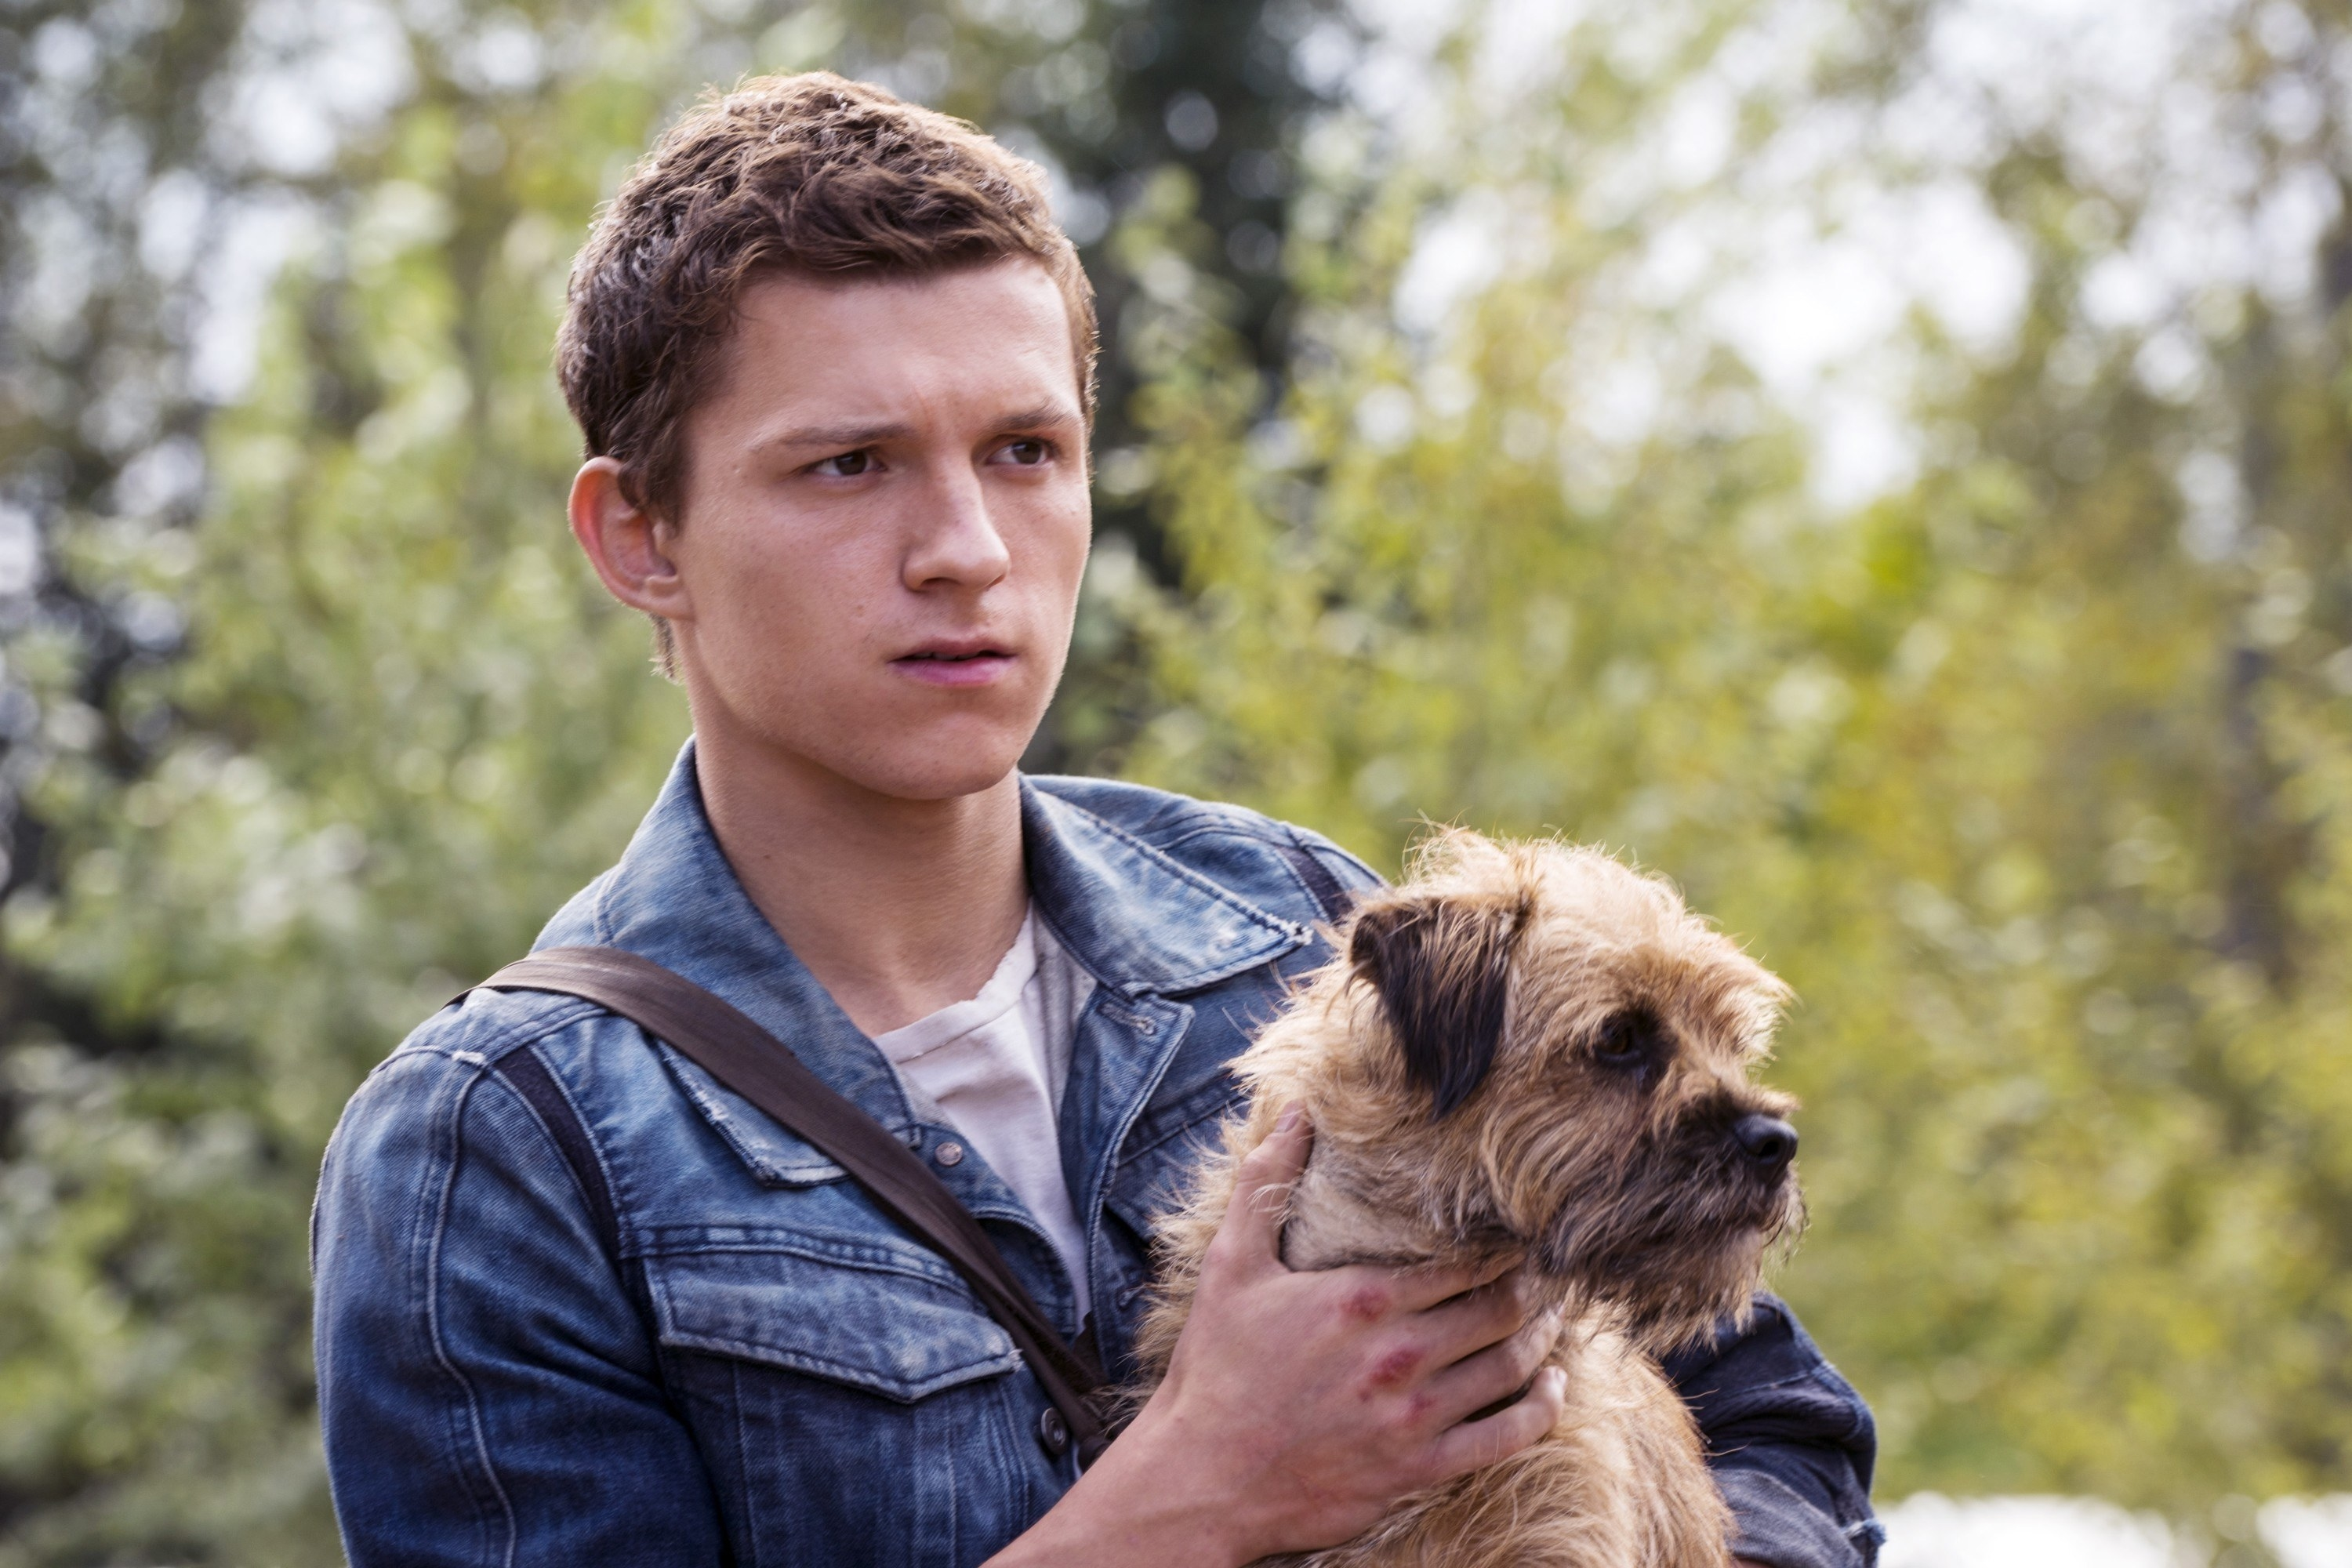 Tom Holland playing Todd in the movie Chaos Walking. Todd is holding his dog Manchee